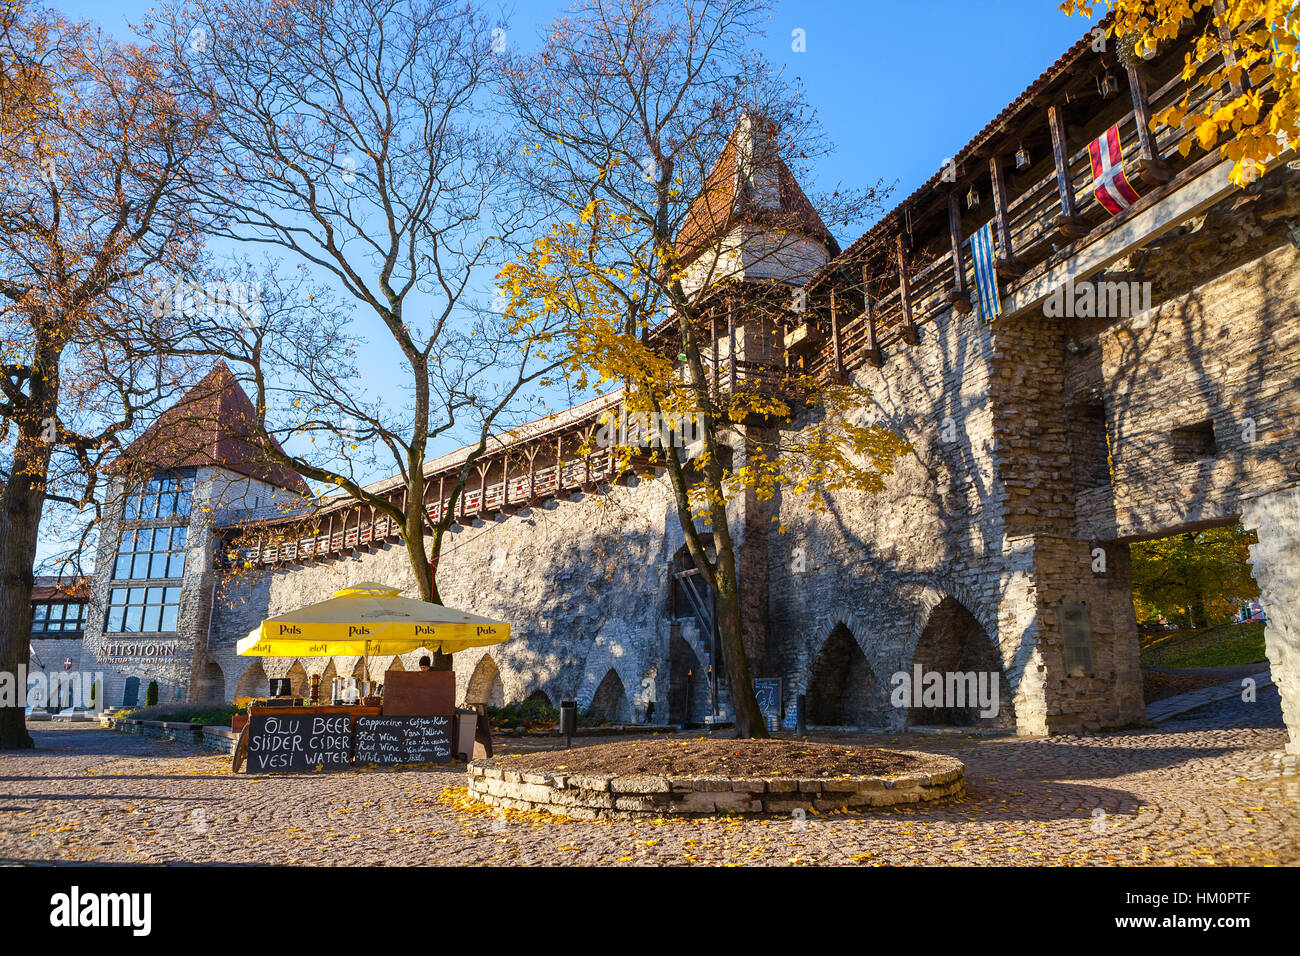 Sunny day in Danish King's Garden with castle walls and towers - Stock Image